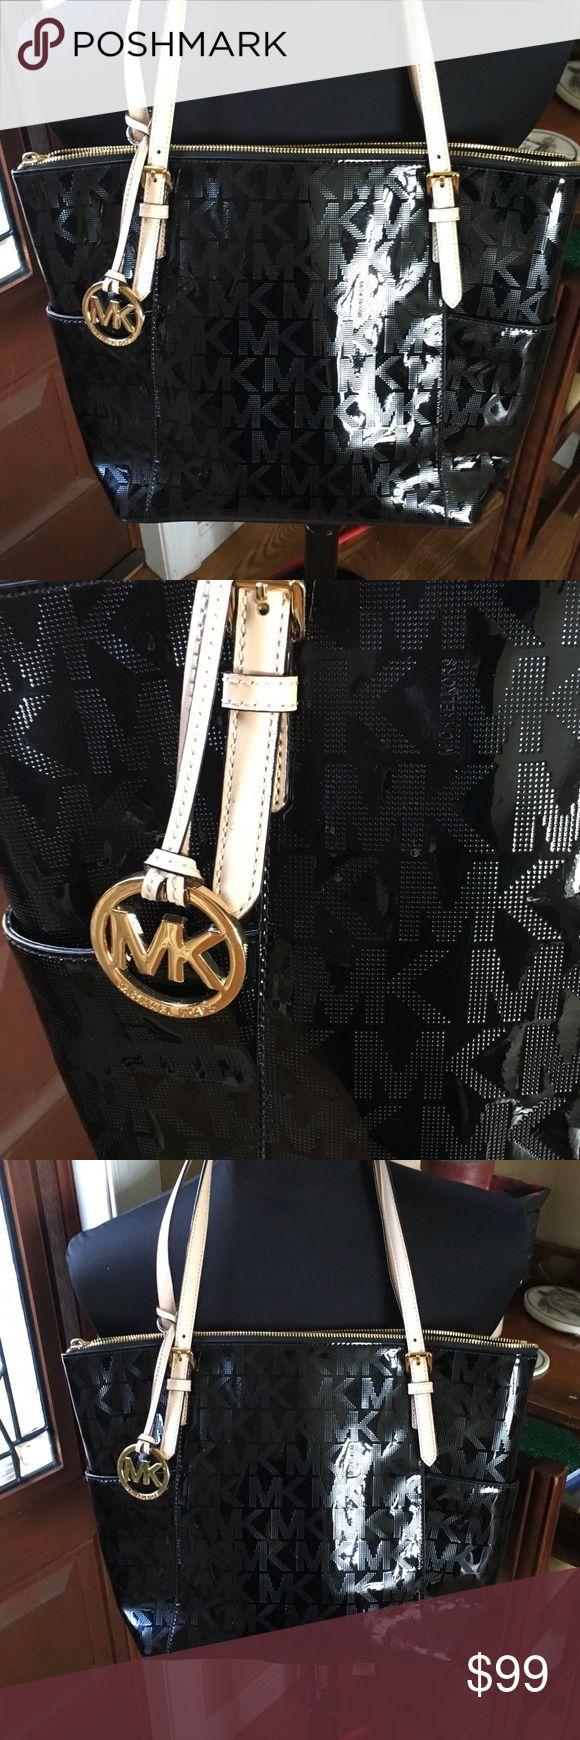 Michael Kors tote Beautiful black Michael Kors tote measures app. 10x13 can easily fit a tablet or small laptop in it. Great for work or everyday. In Excellent condition . Feel free to ask any questions KORS Michael Kors Bags Shoulder Bags